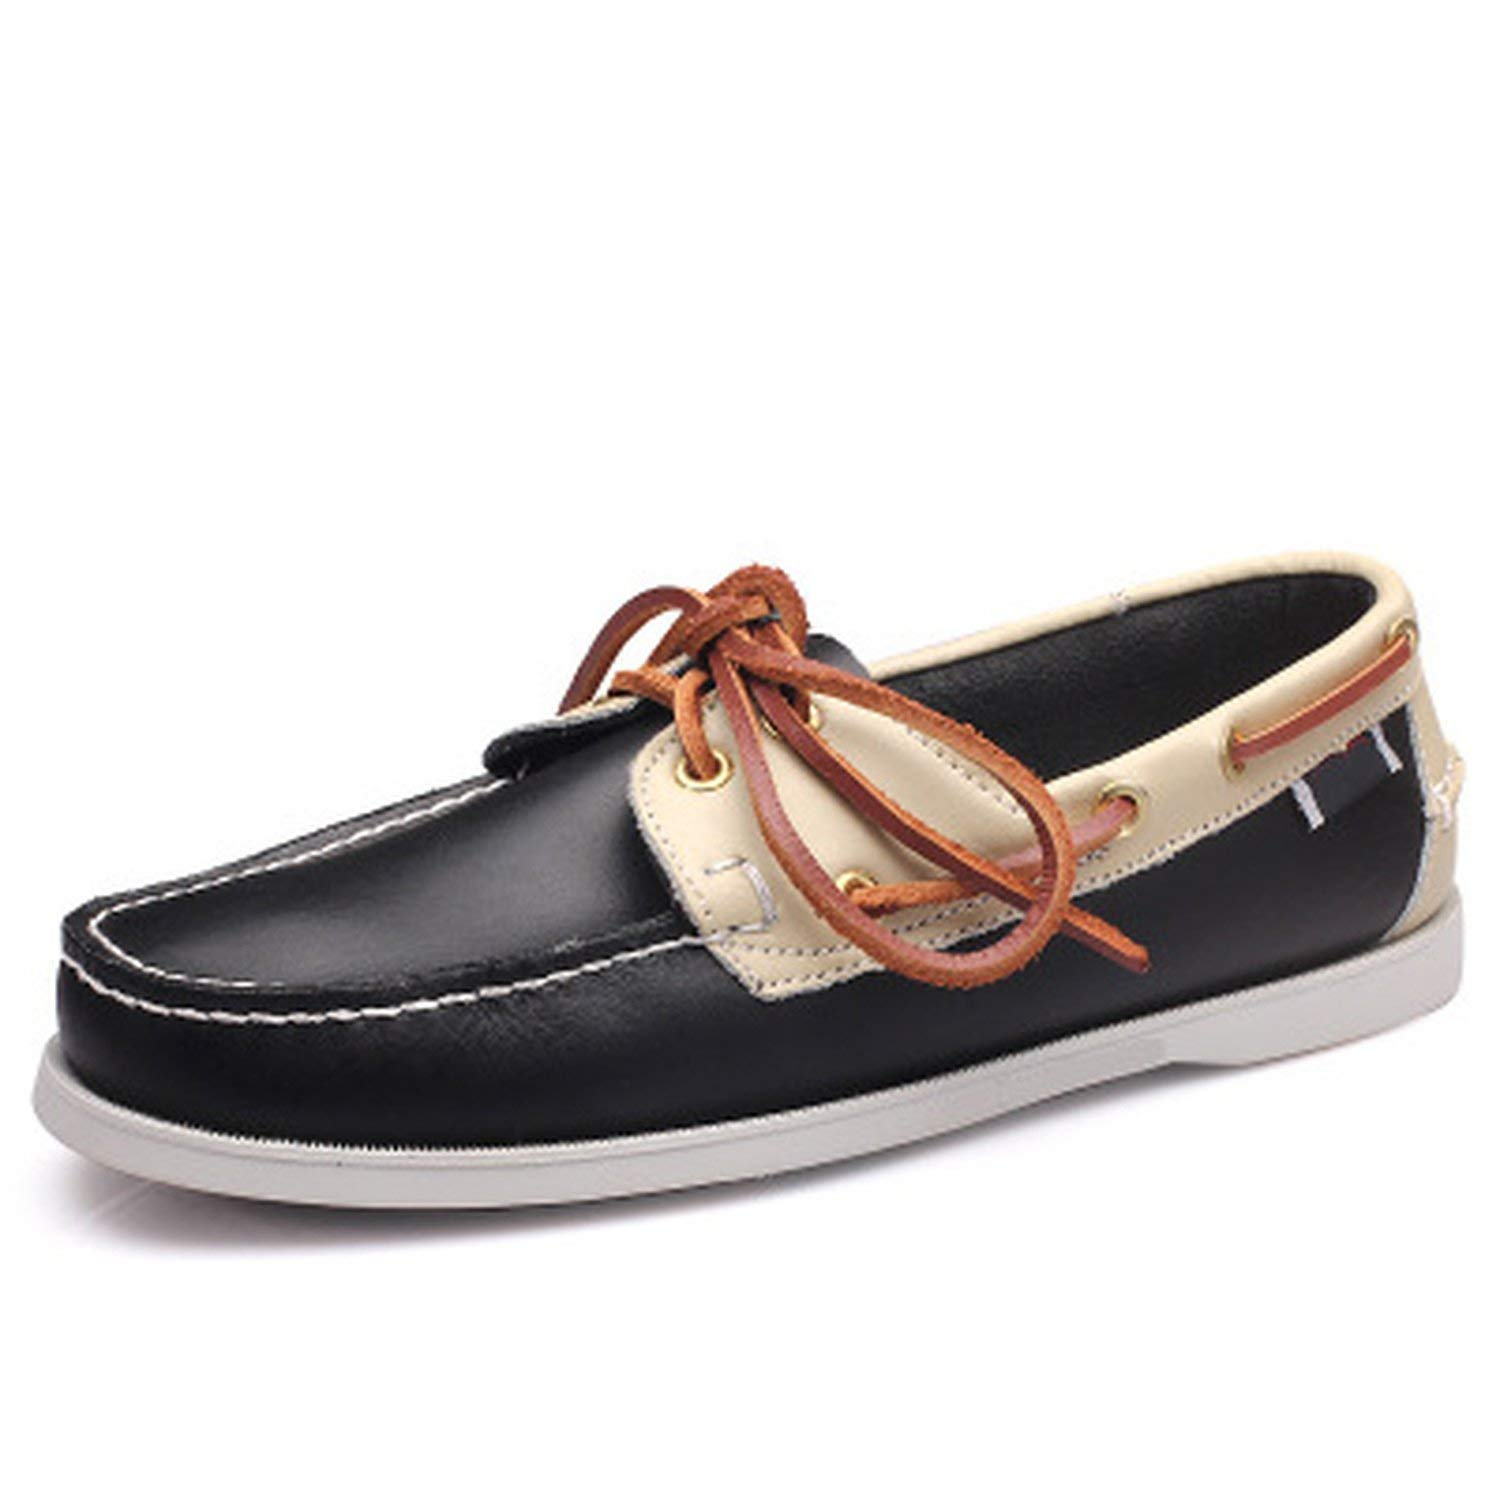 Men Casual Shoes Tassel Boat Shoes Classic Loafers Slip On Gray Driving Shoes Flats,Black Beige,10 by Just XiaoZhouZhou